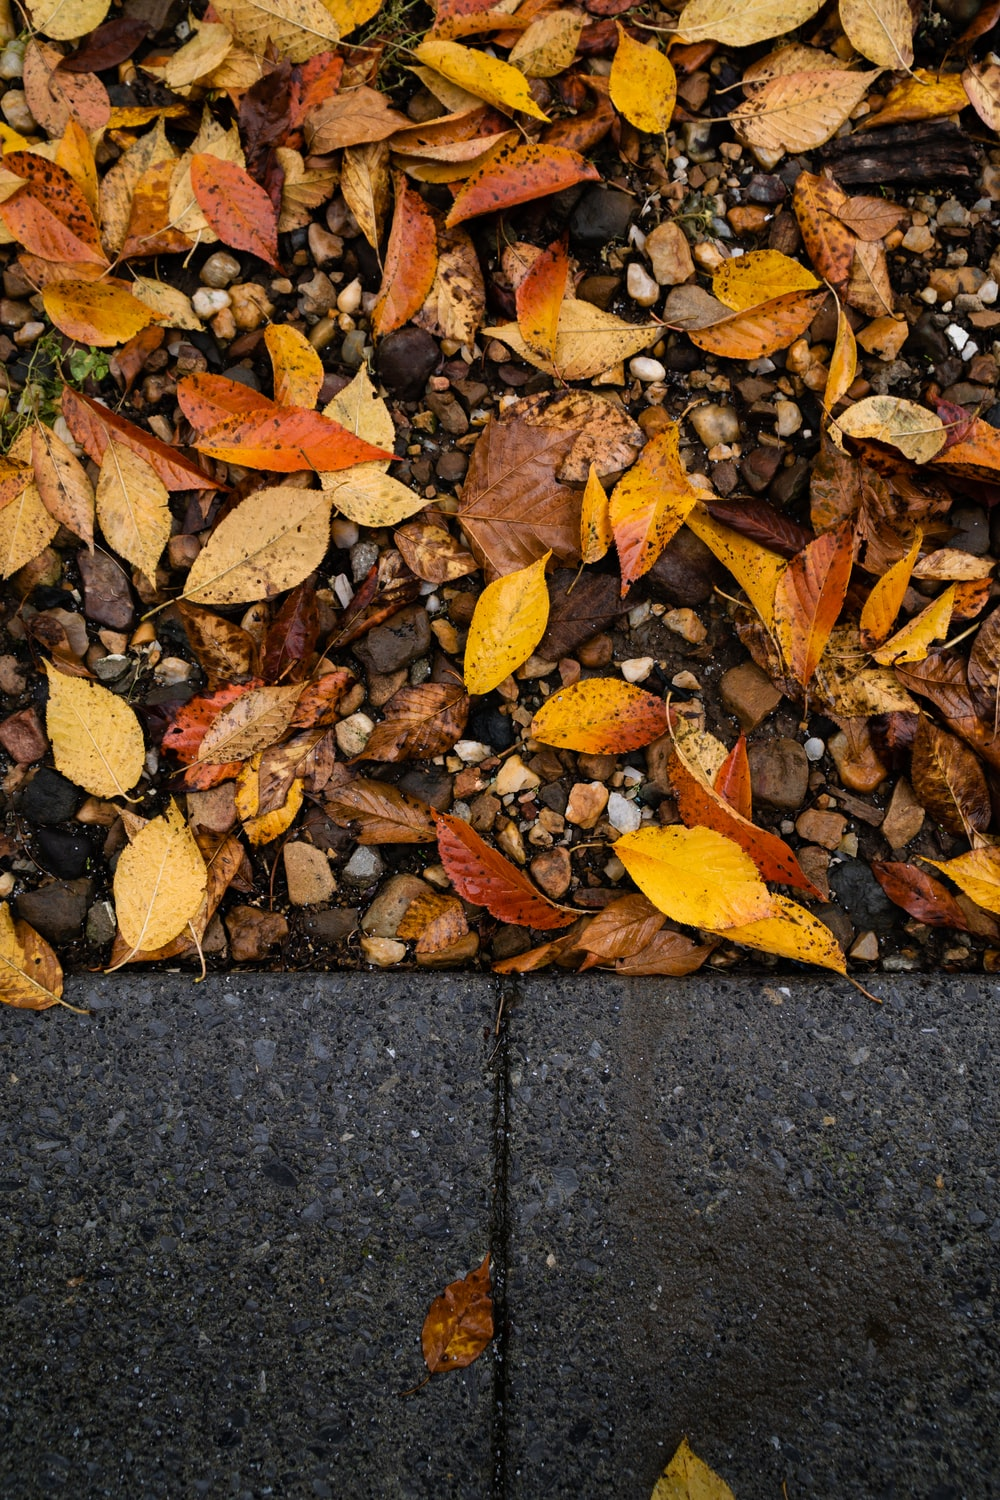 brown dry leaves on gray surface